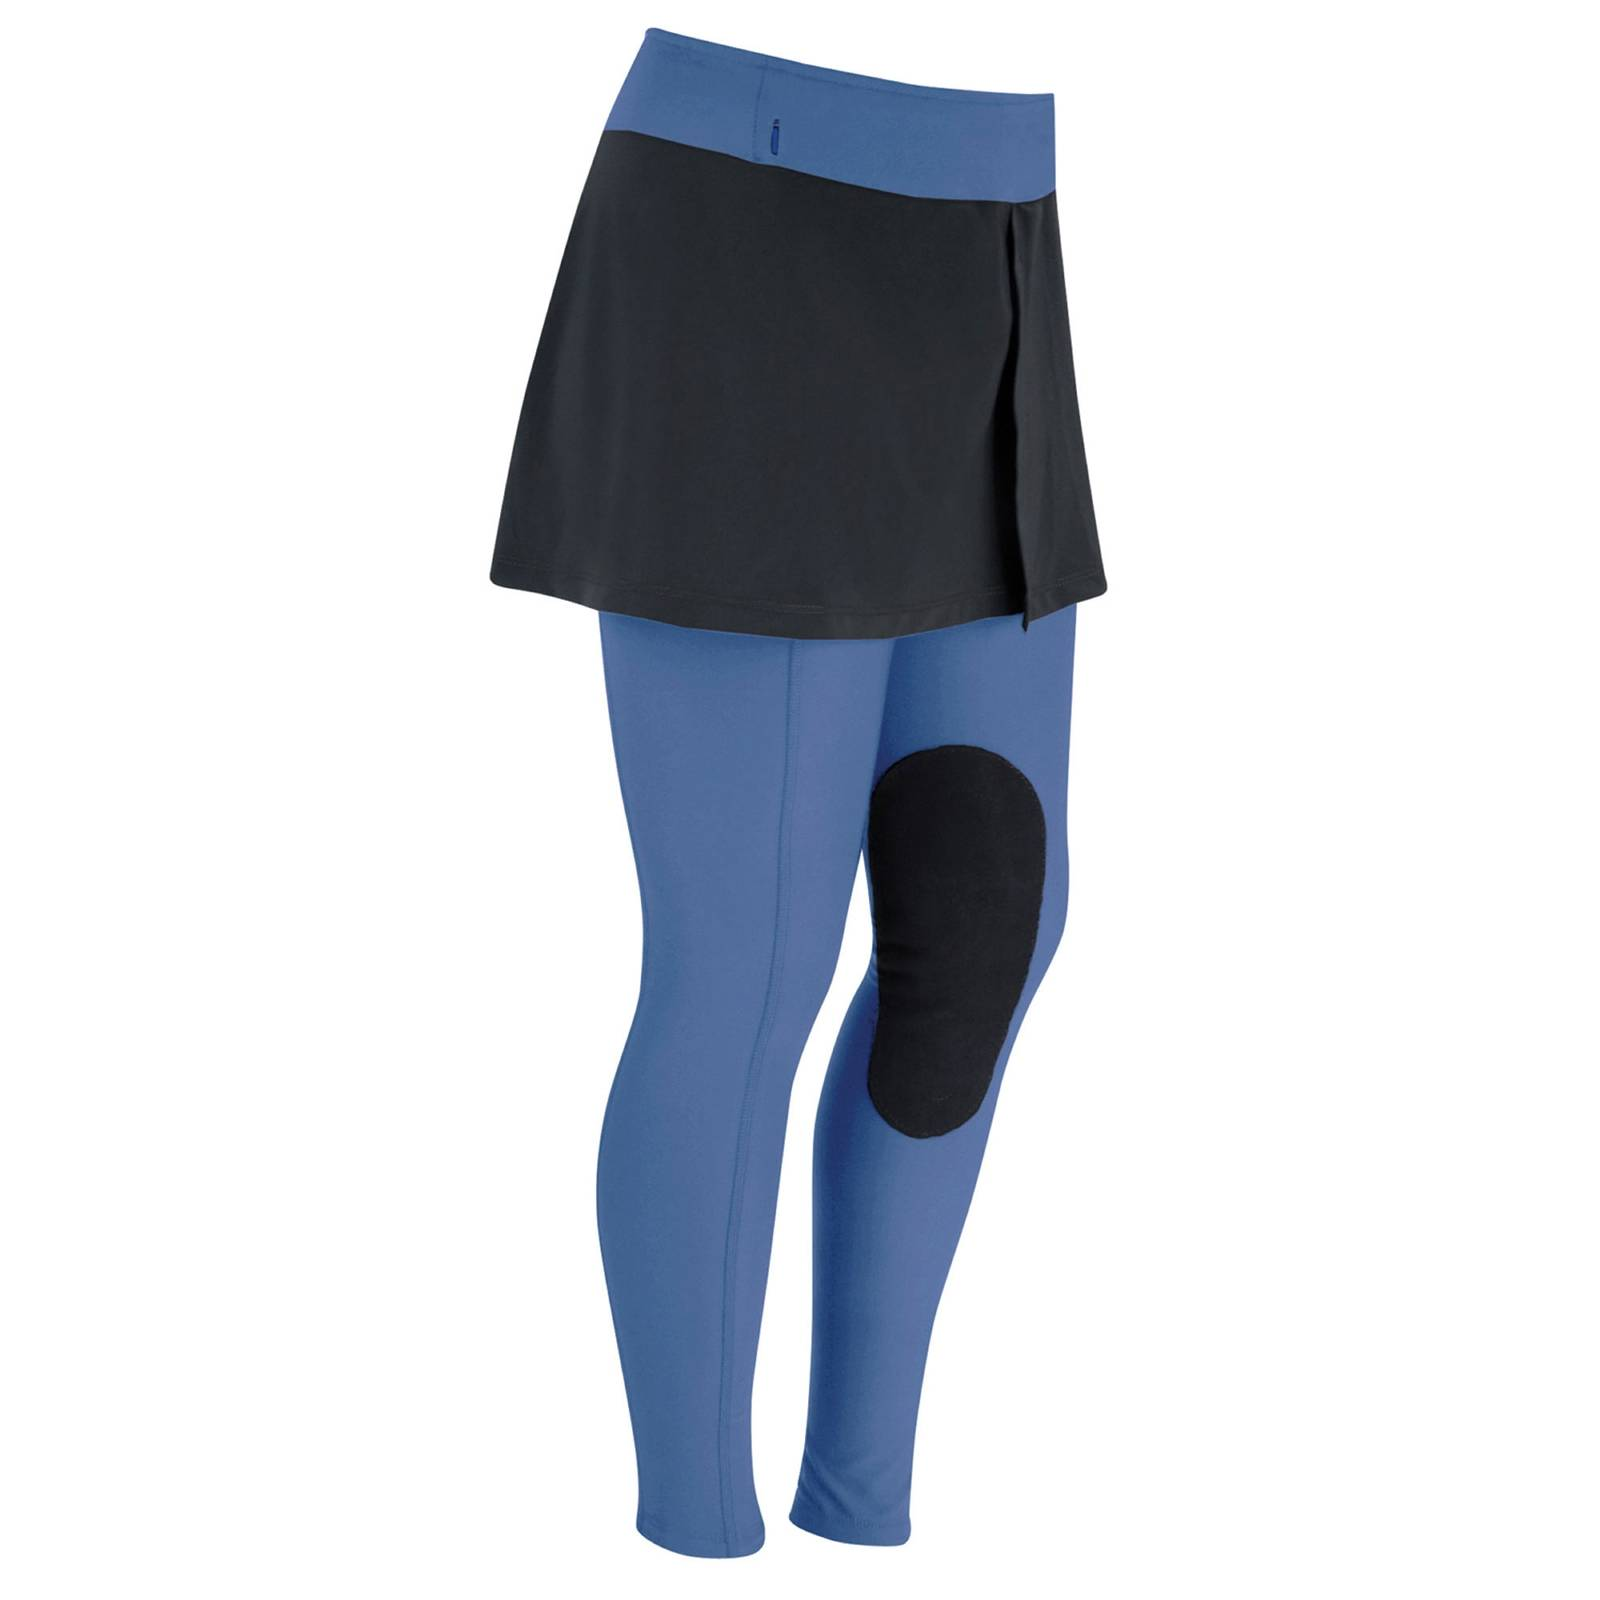 OPEN BOX - Irideon Kids' Issential Miniature Riding Tights - X-Small - Black/Purple